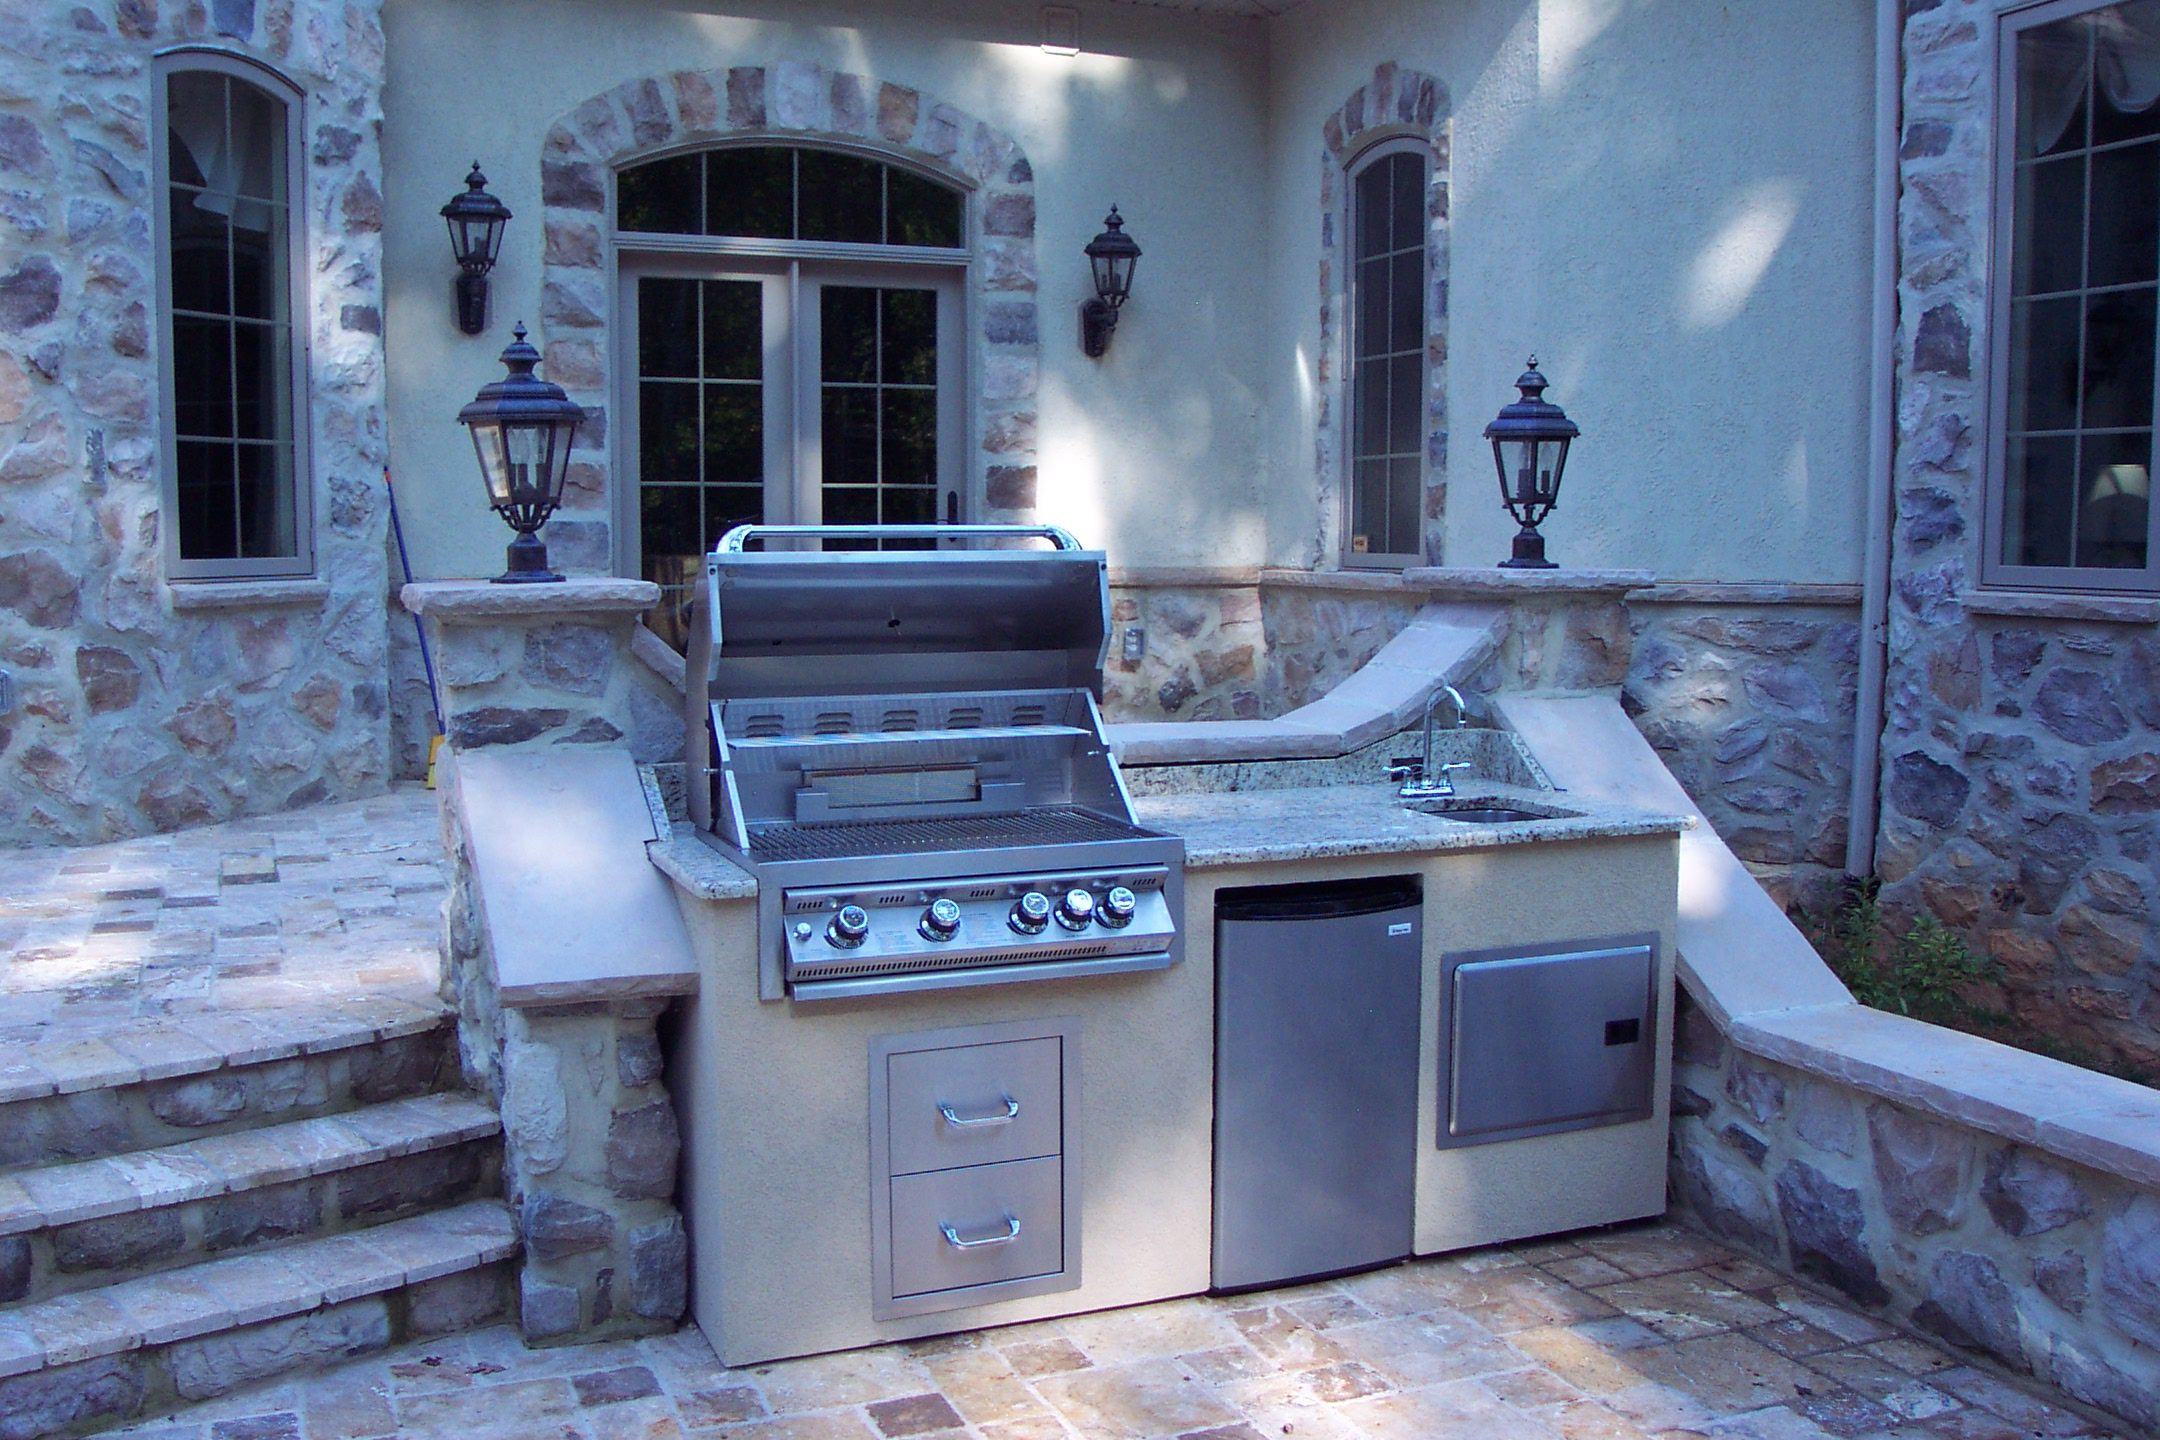 Custom Grill Builders- Complete Outdoor Kitchen! This 7\' wide x 32 ...